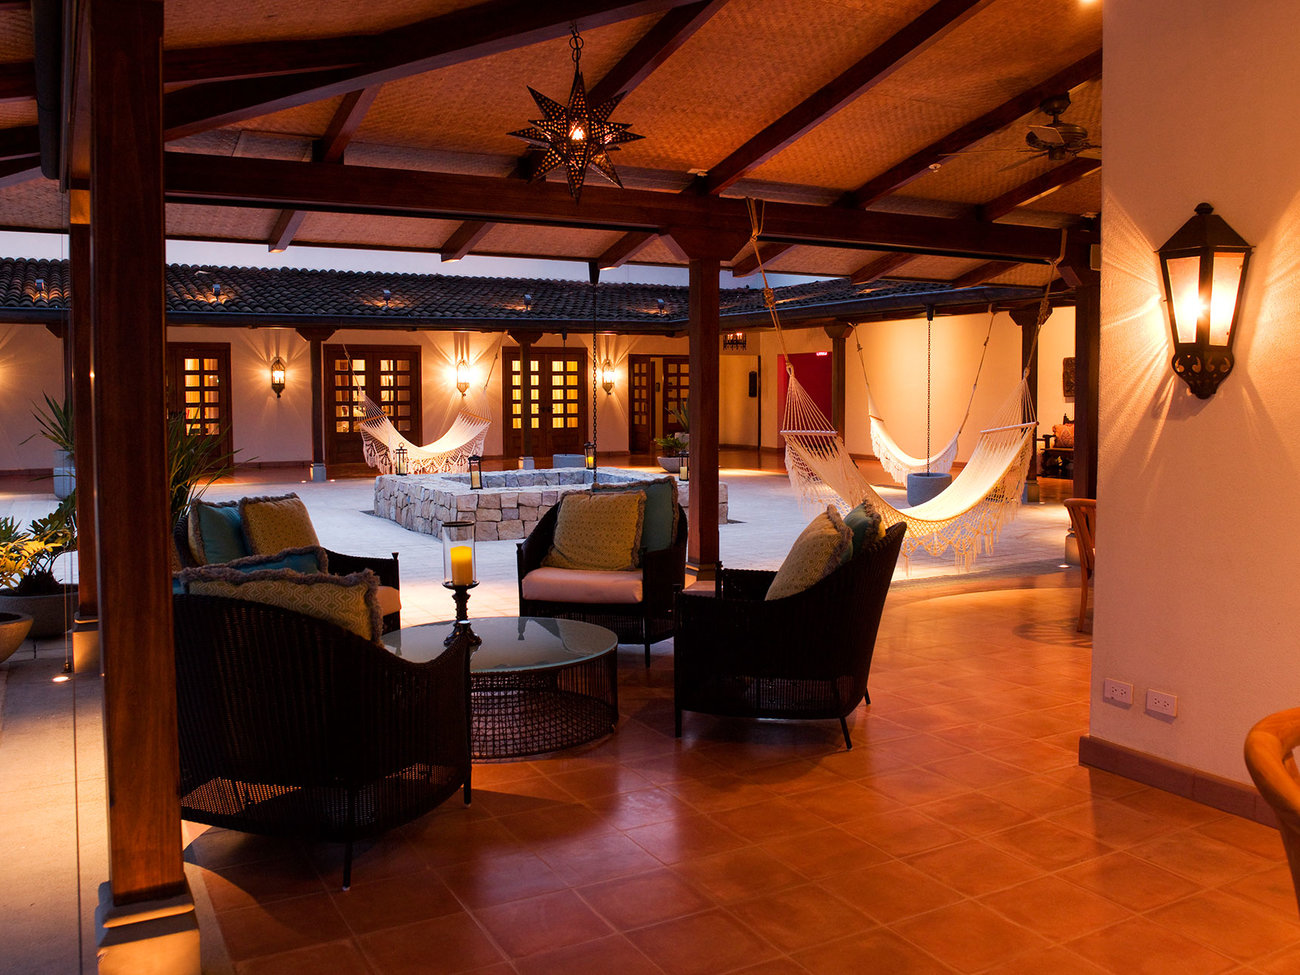 JW Marriott Guanacaste Resort & Spa, Guanacaste, Costa Rica